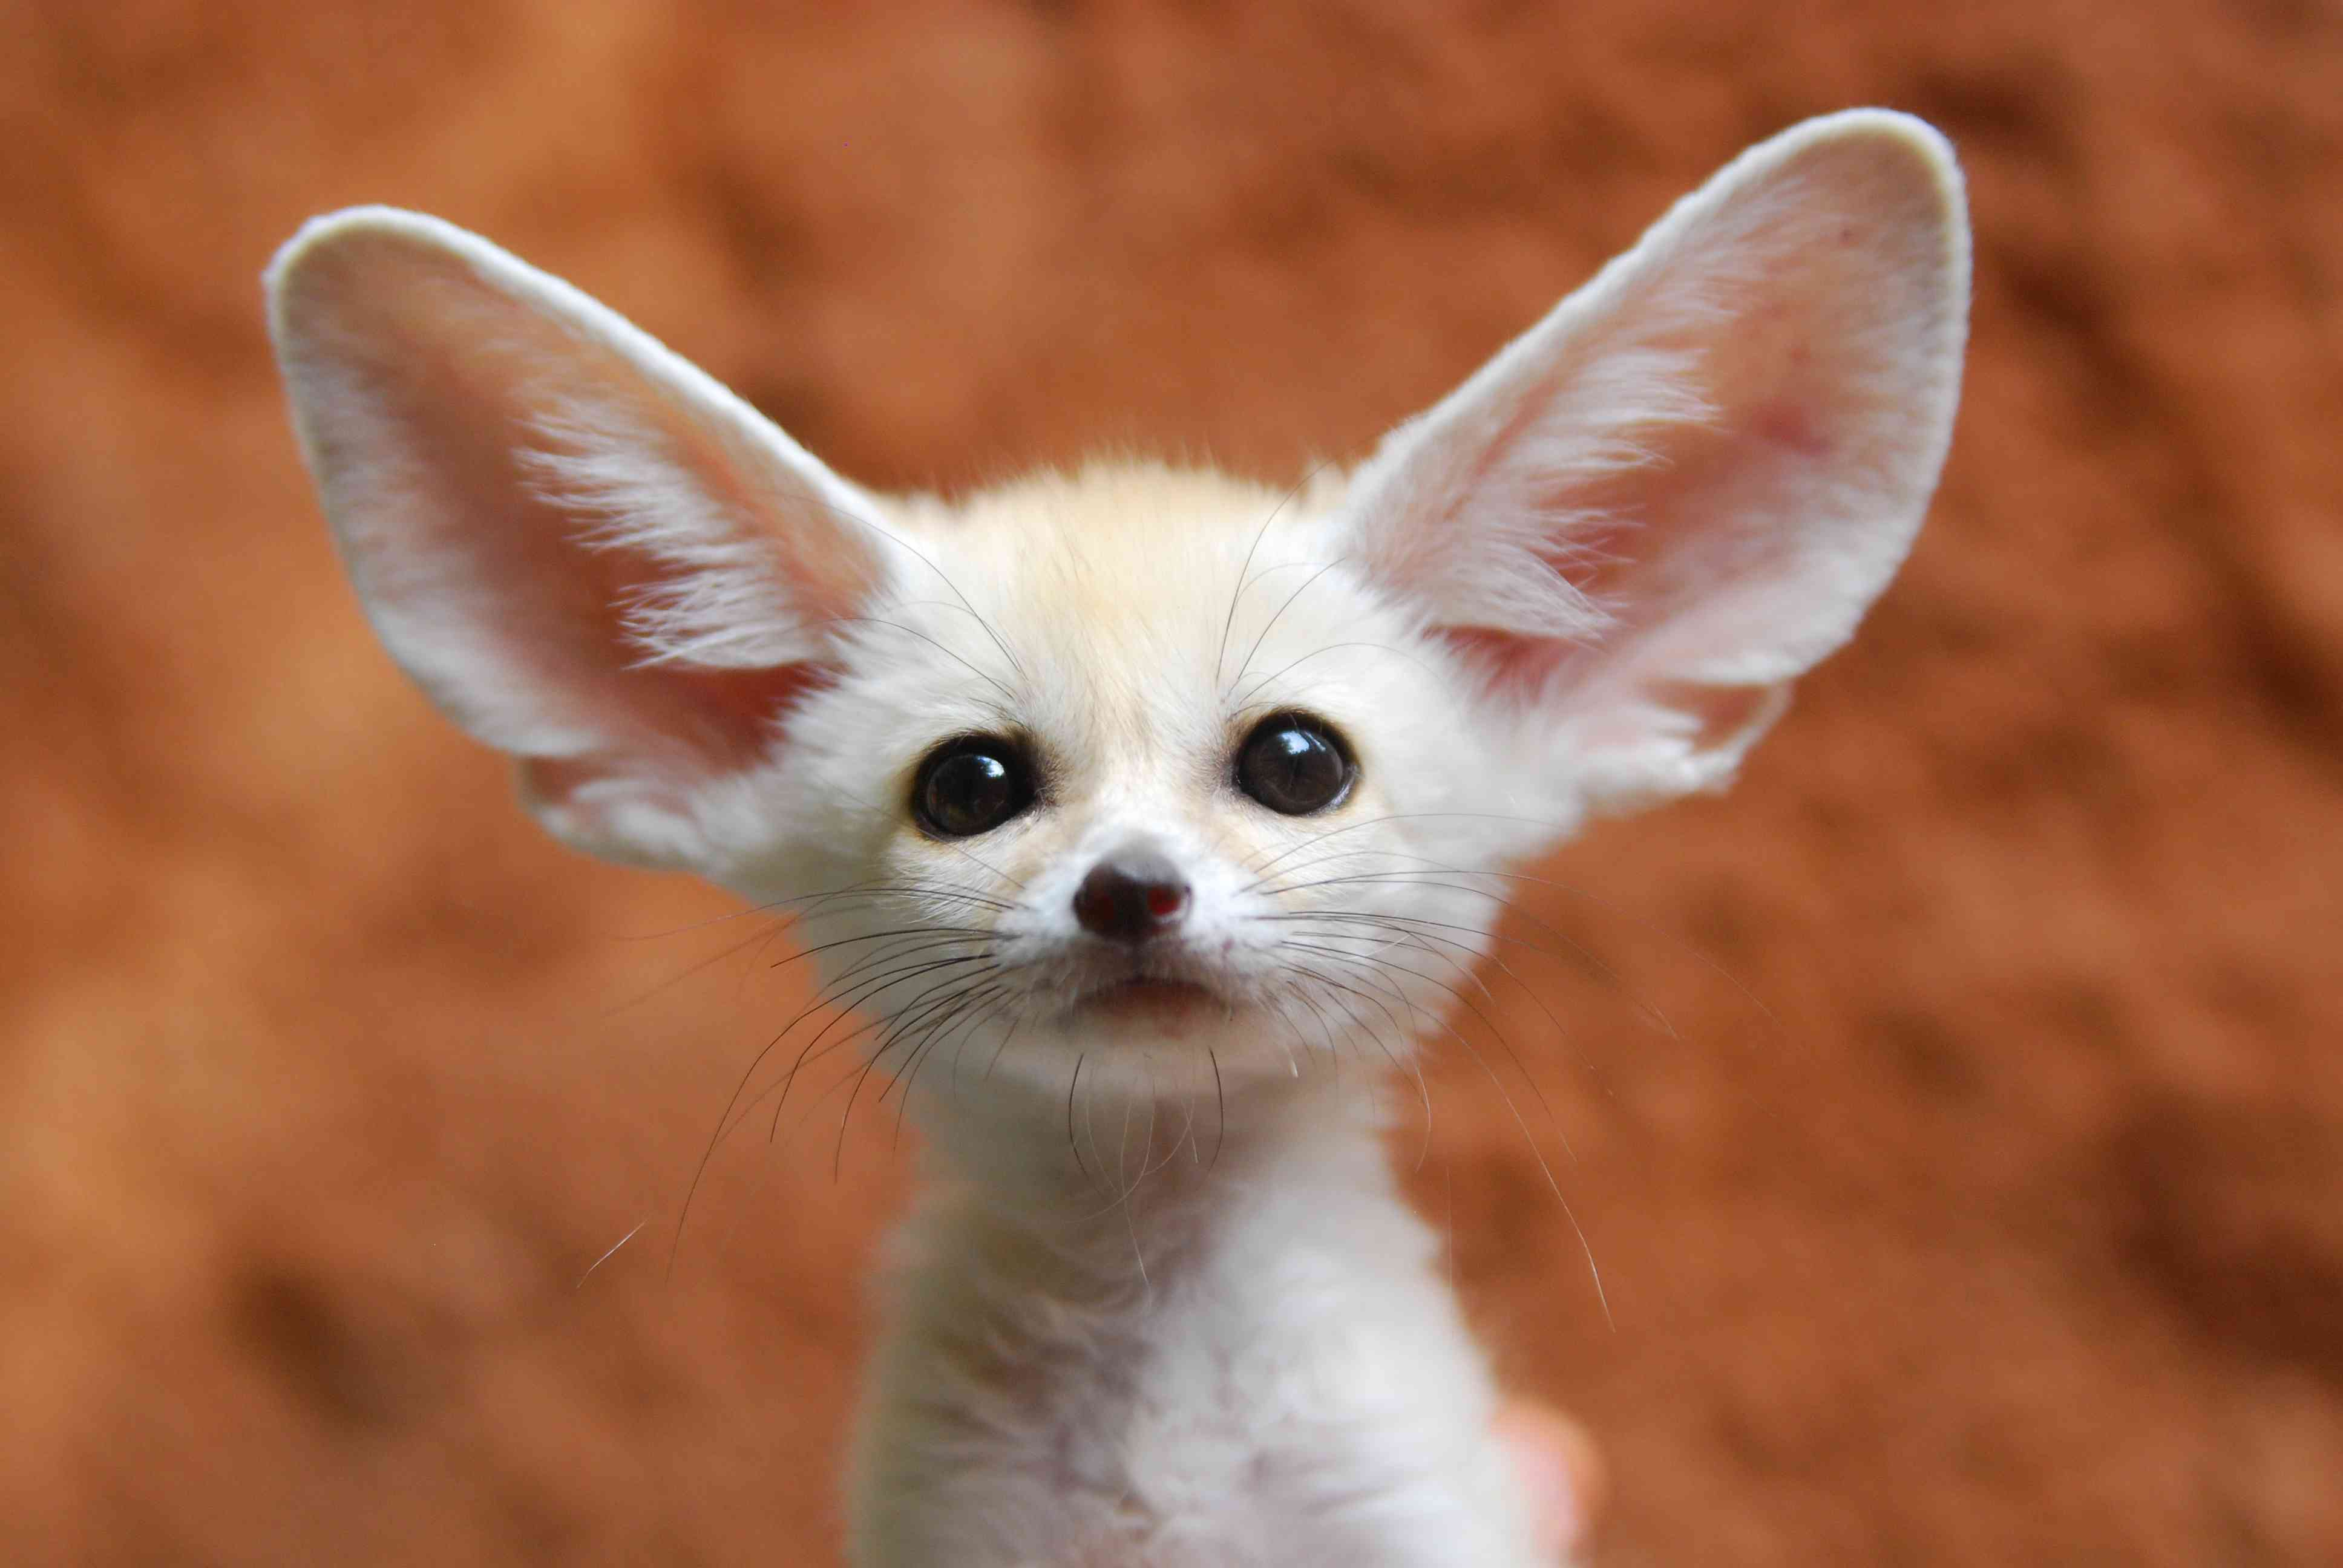 Young fennec fox with large, perky ears